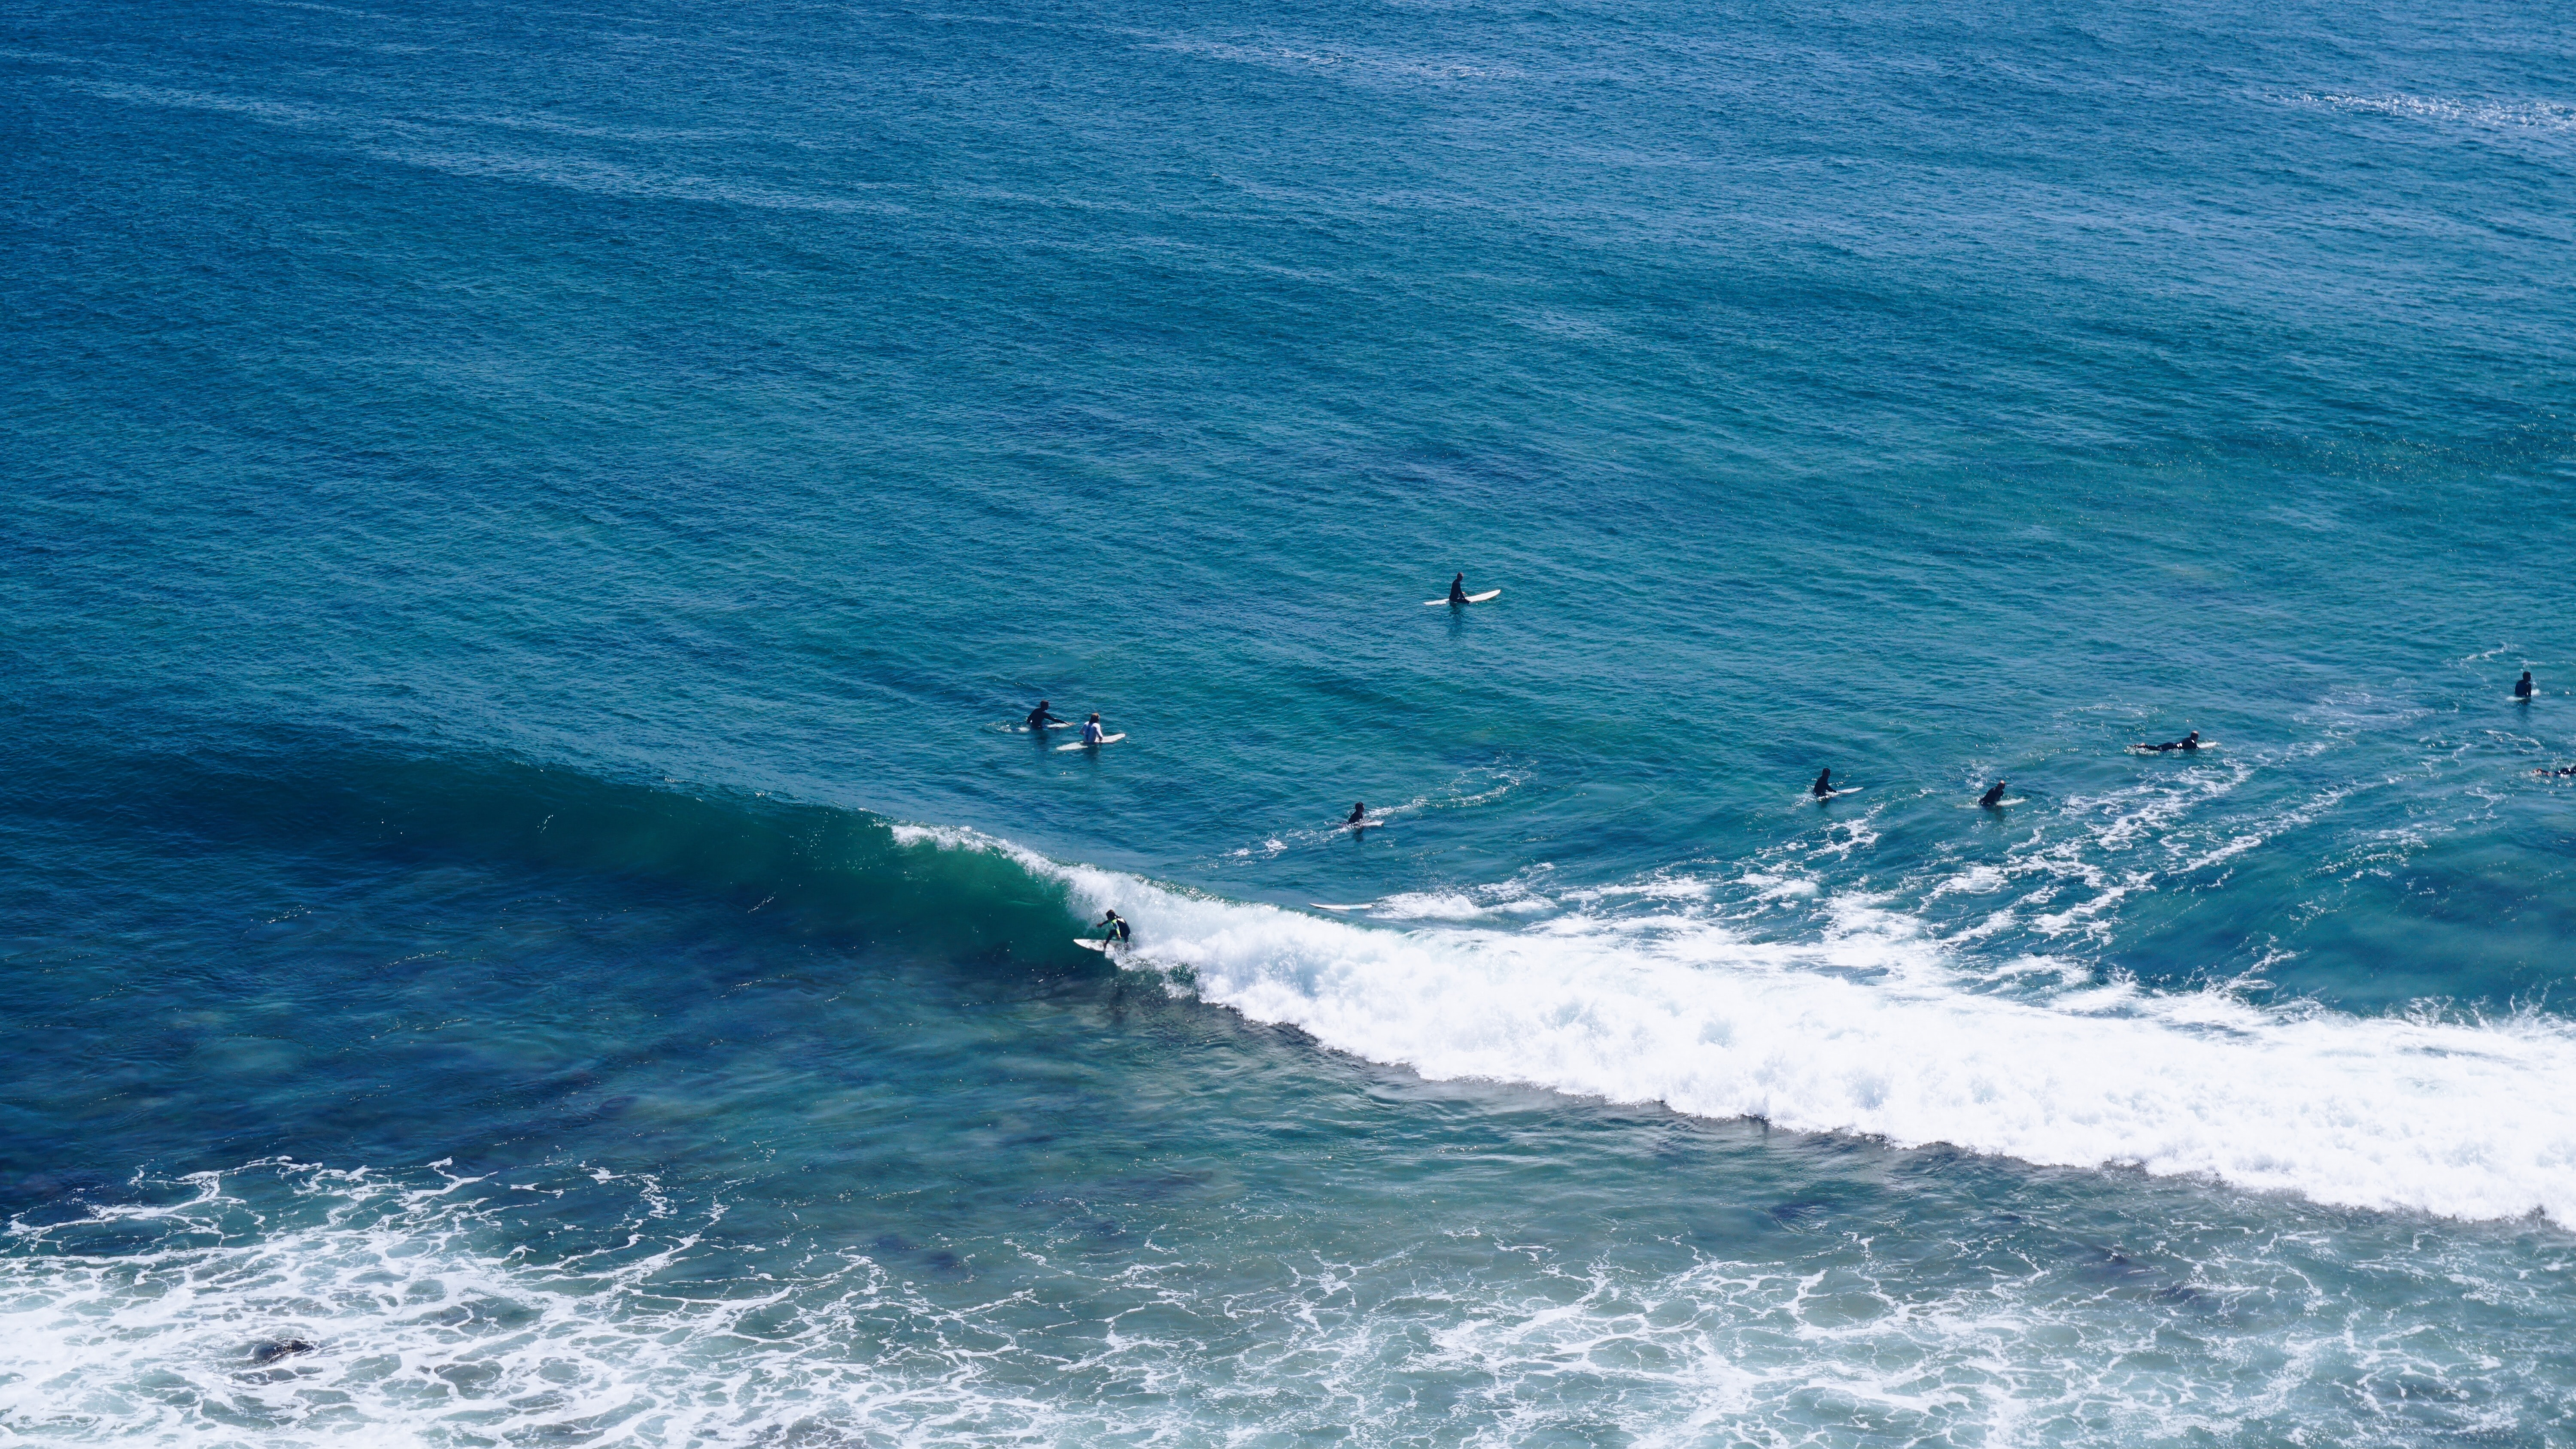 aerial shot of person surfing on ocean